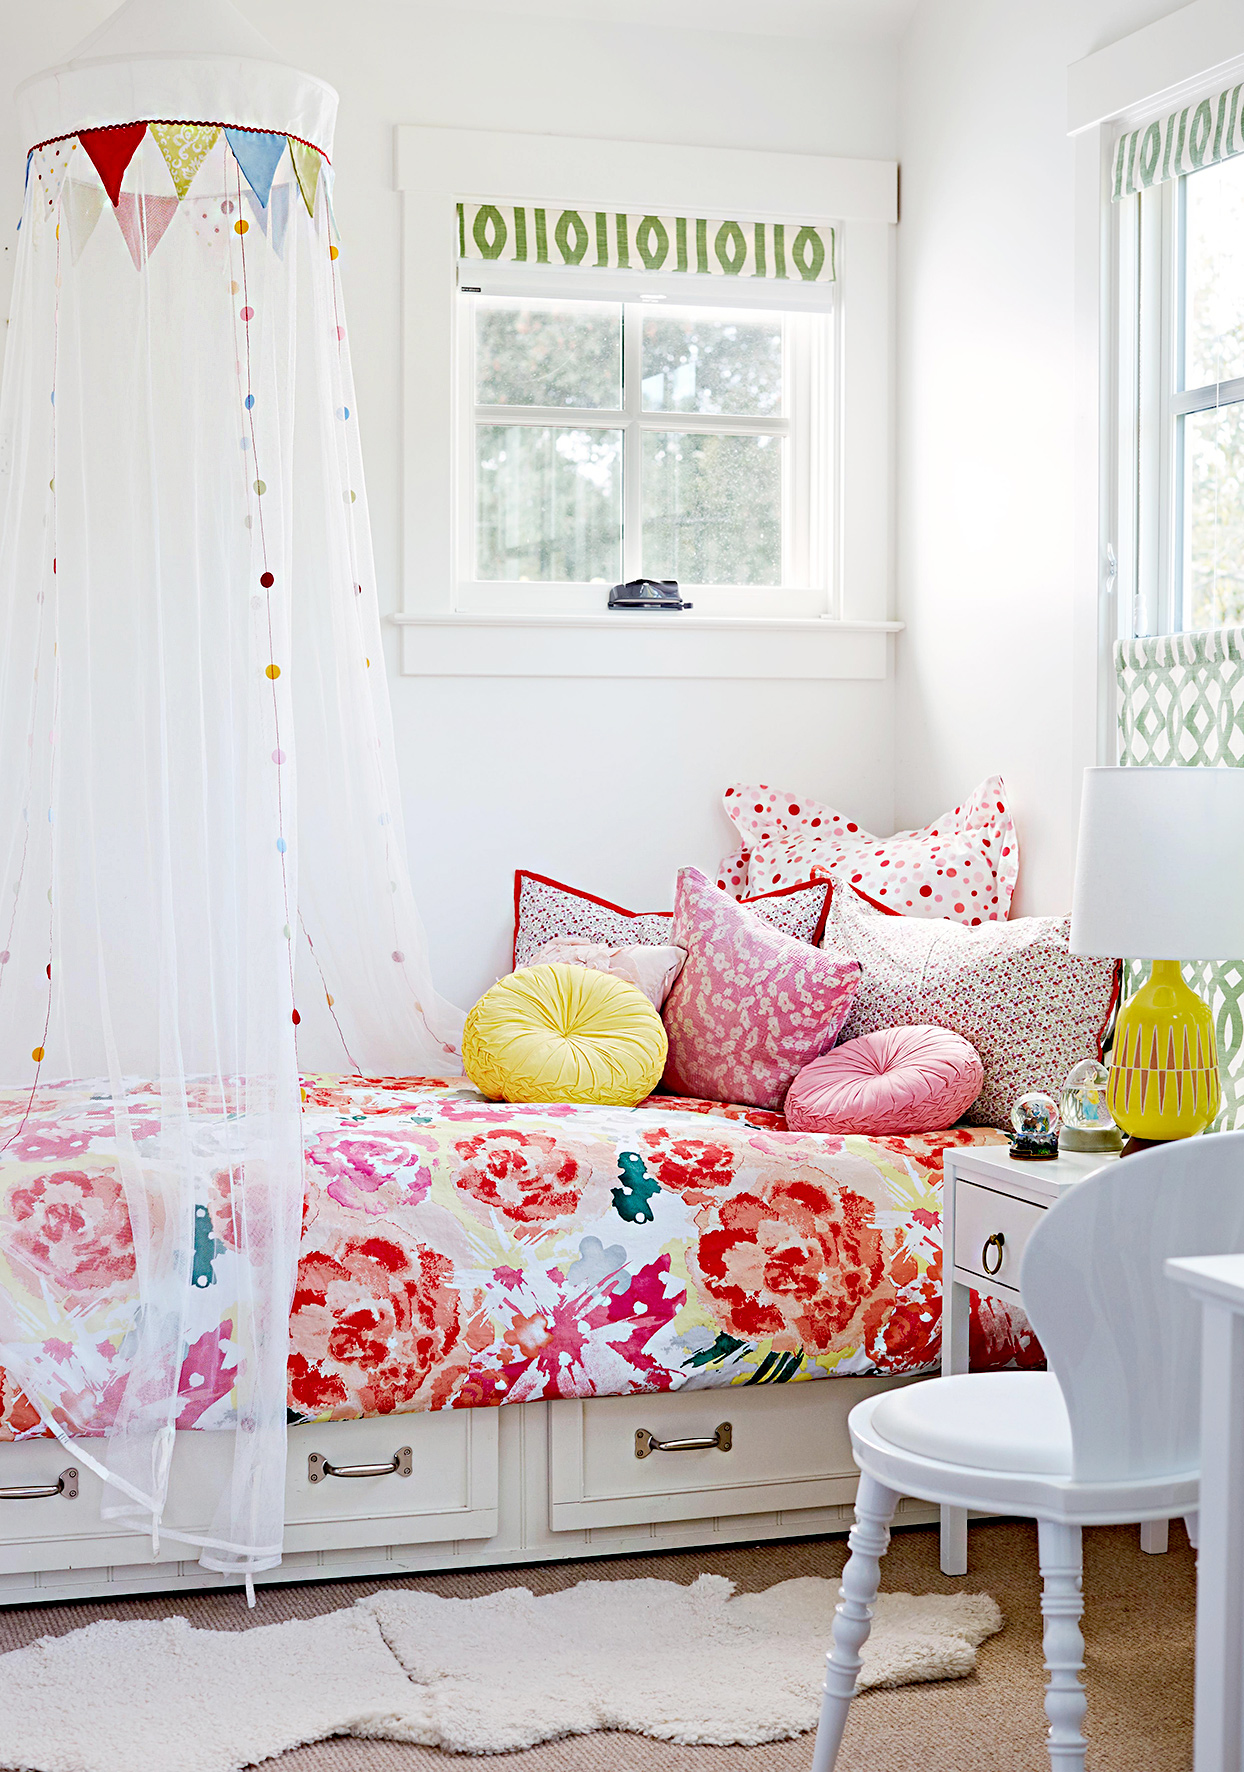 Bed with floral bedspread and netting